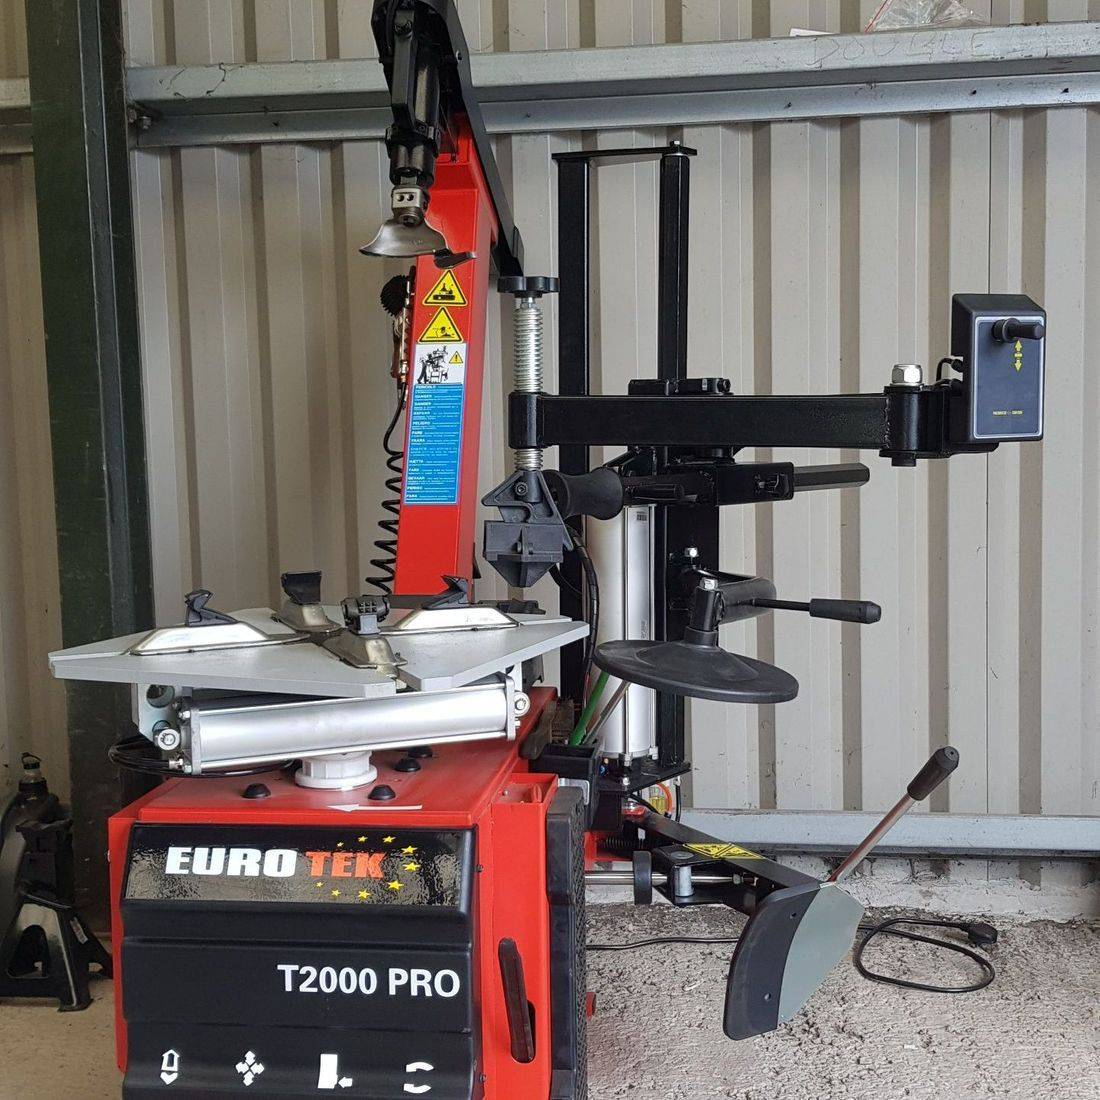 Tyre changing machine, run flat tyres, assist arm